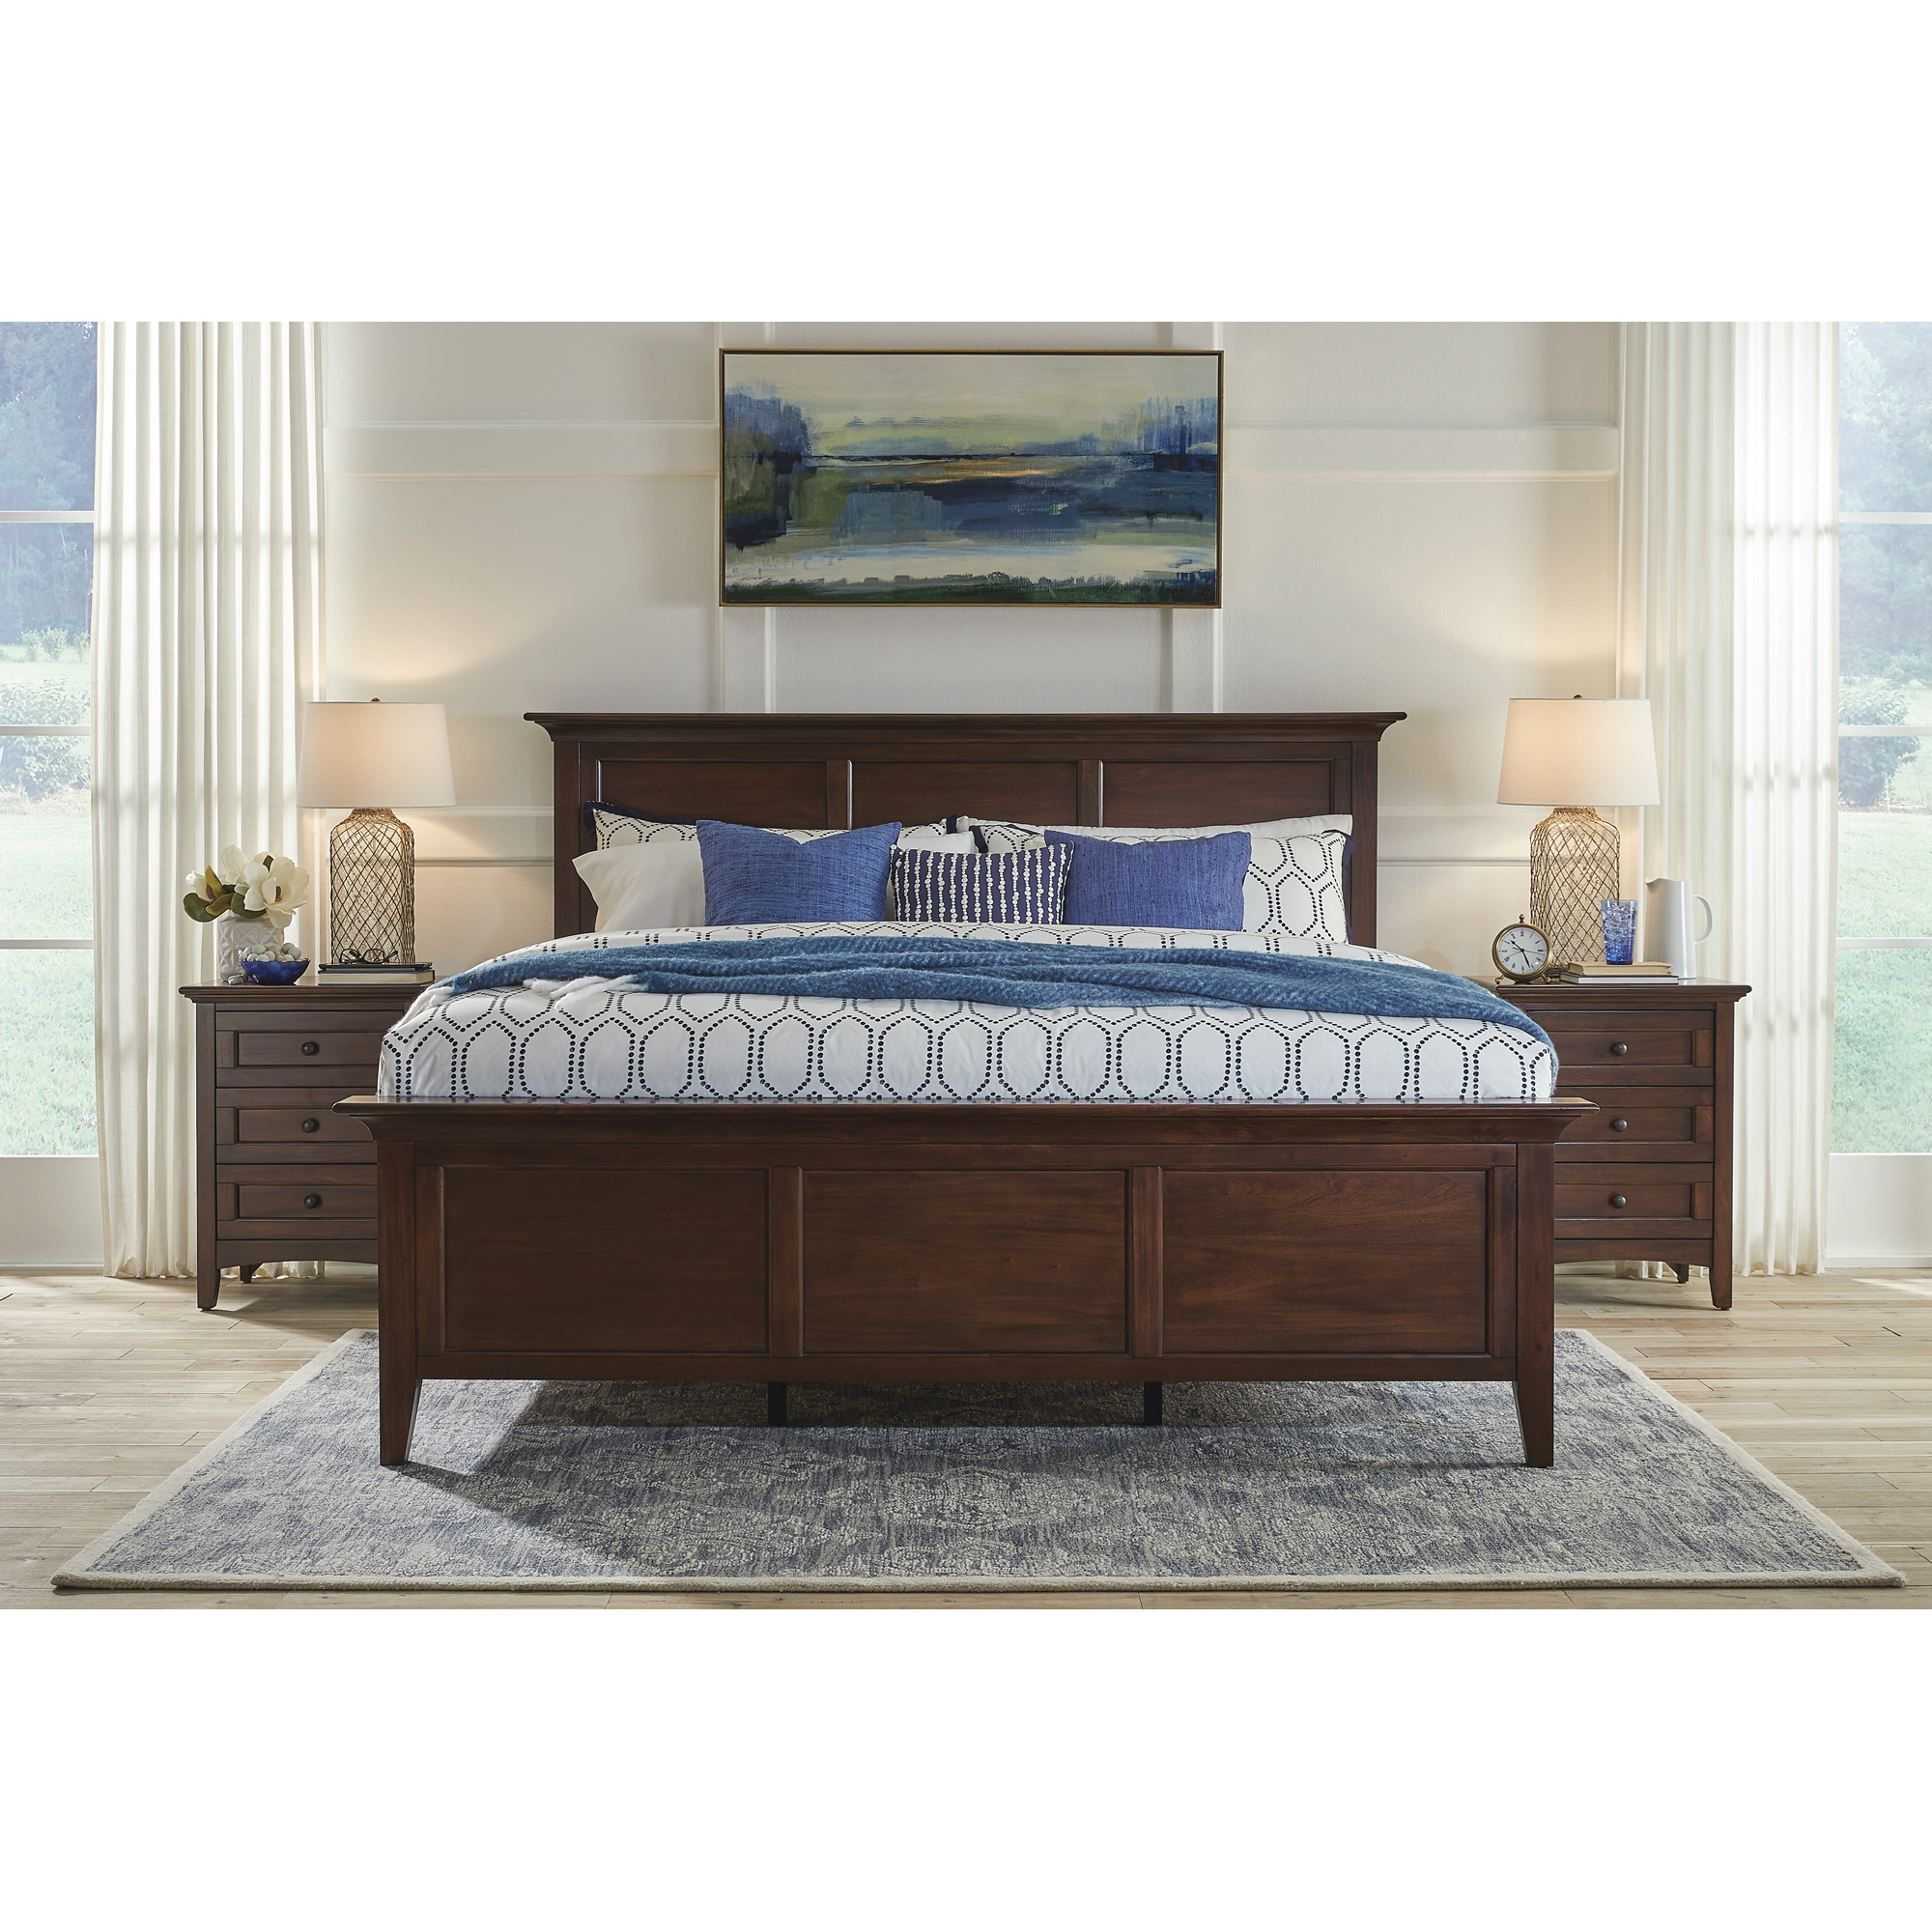 A America | Westlake Cherry Brown Queen Panel Bed